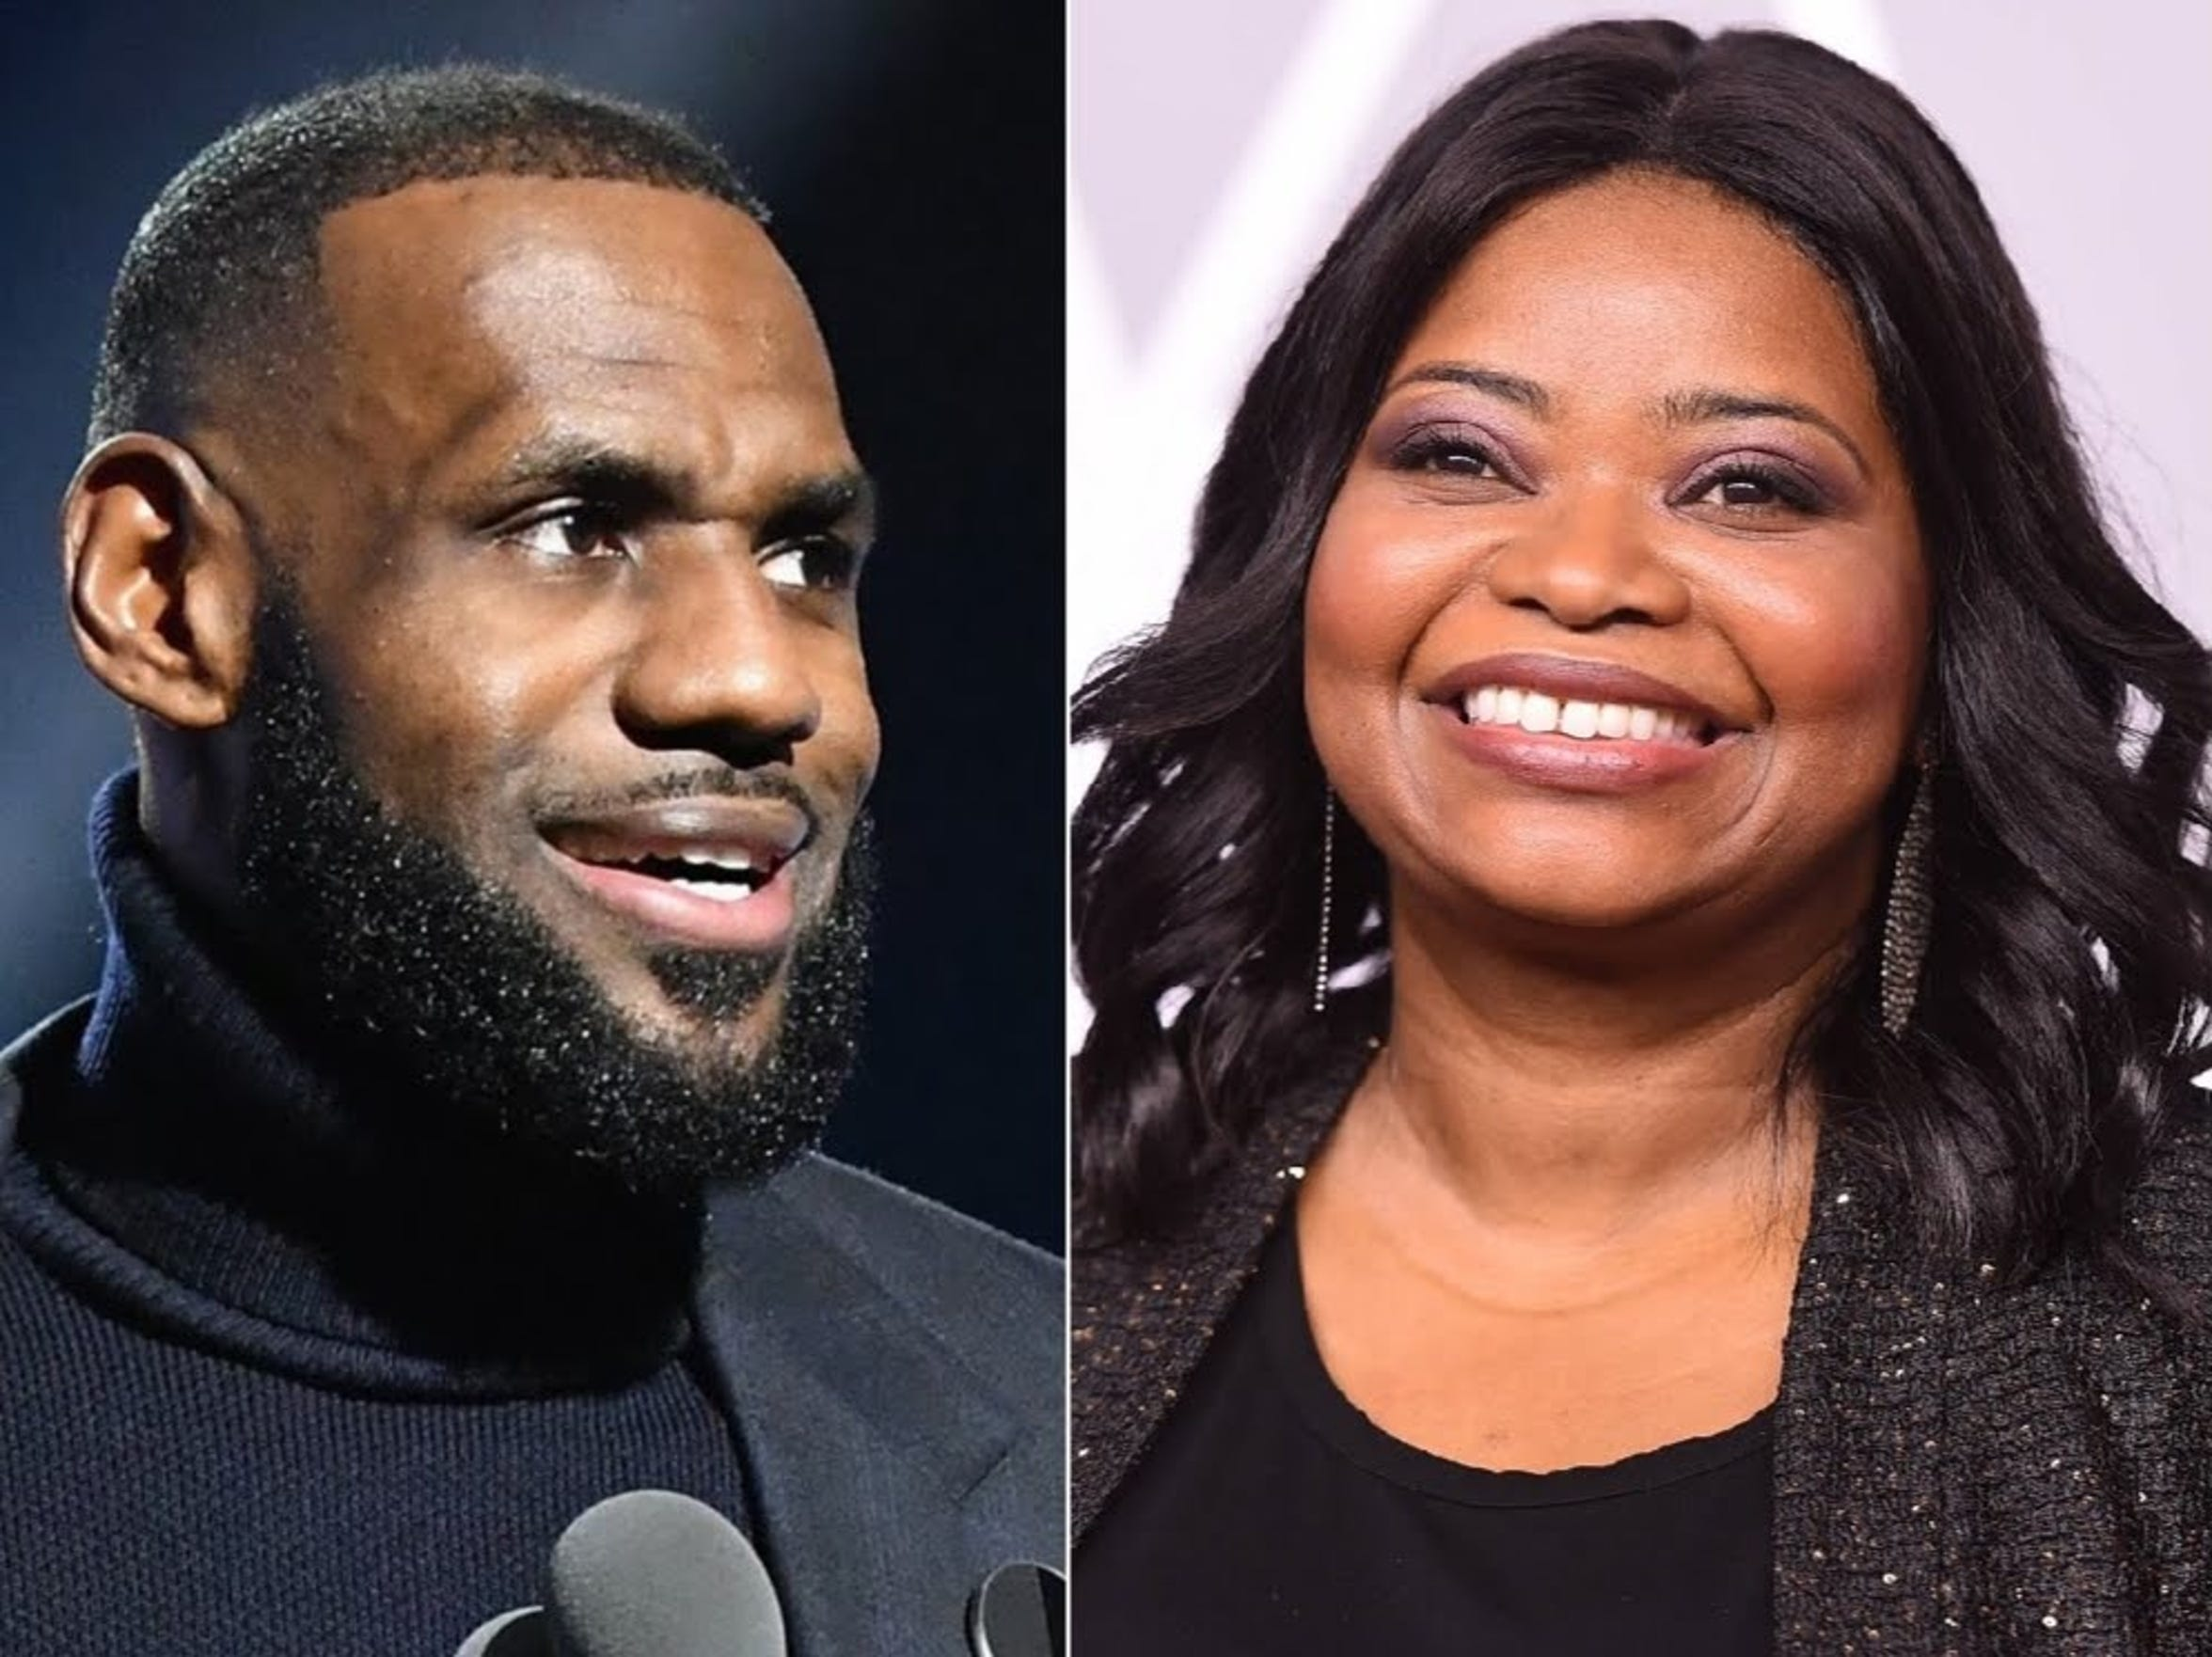 LeBron James, left, and Octavia Spencer will serve as executive producers for an upcoming Netflix series based on the life of Indianapolis entrepreneur Madam C.J. Walker. Spencer will star in the series.